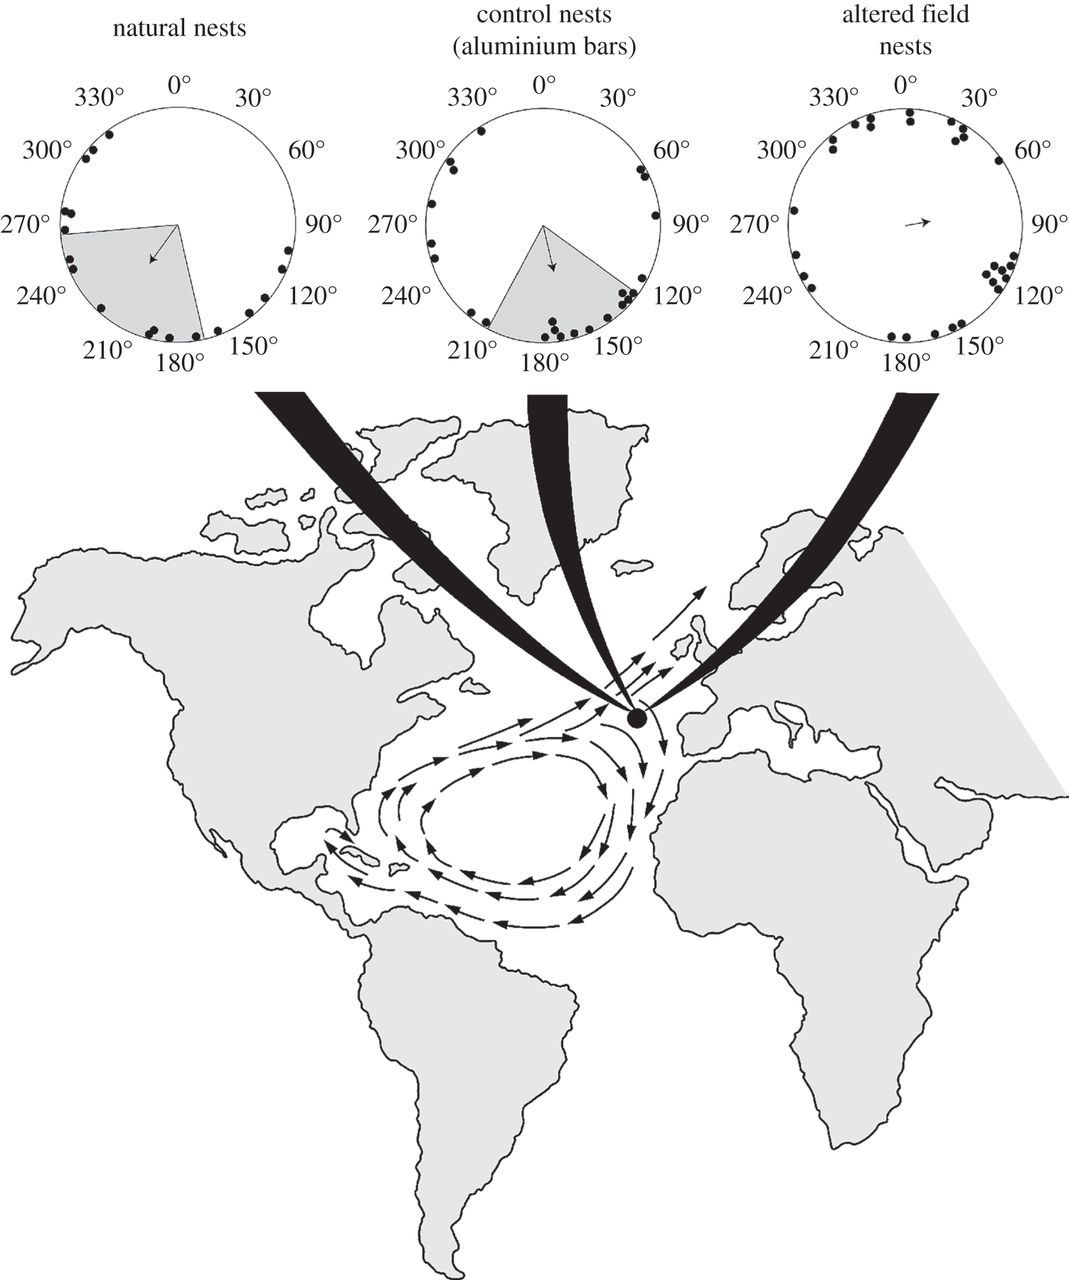 The geomagnetic environment in which sea turtle eggs